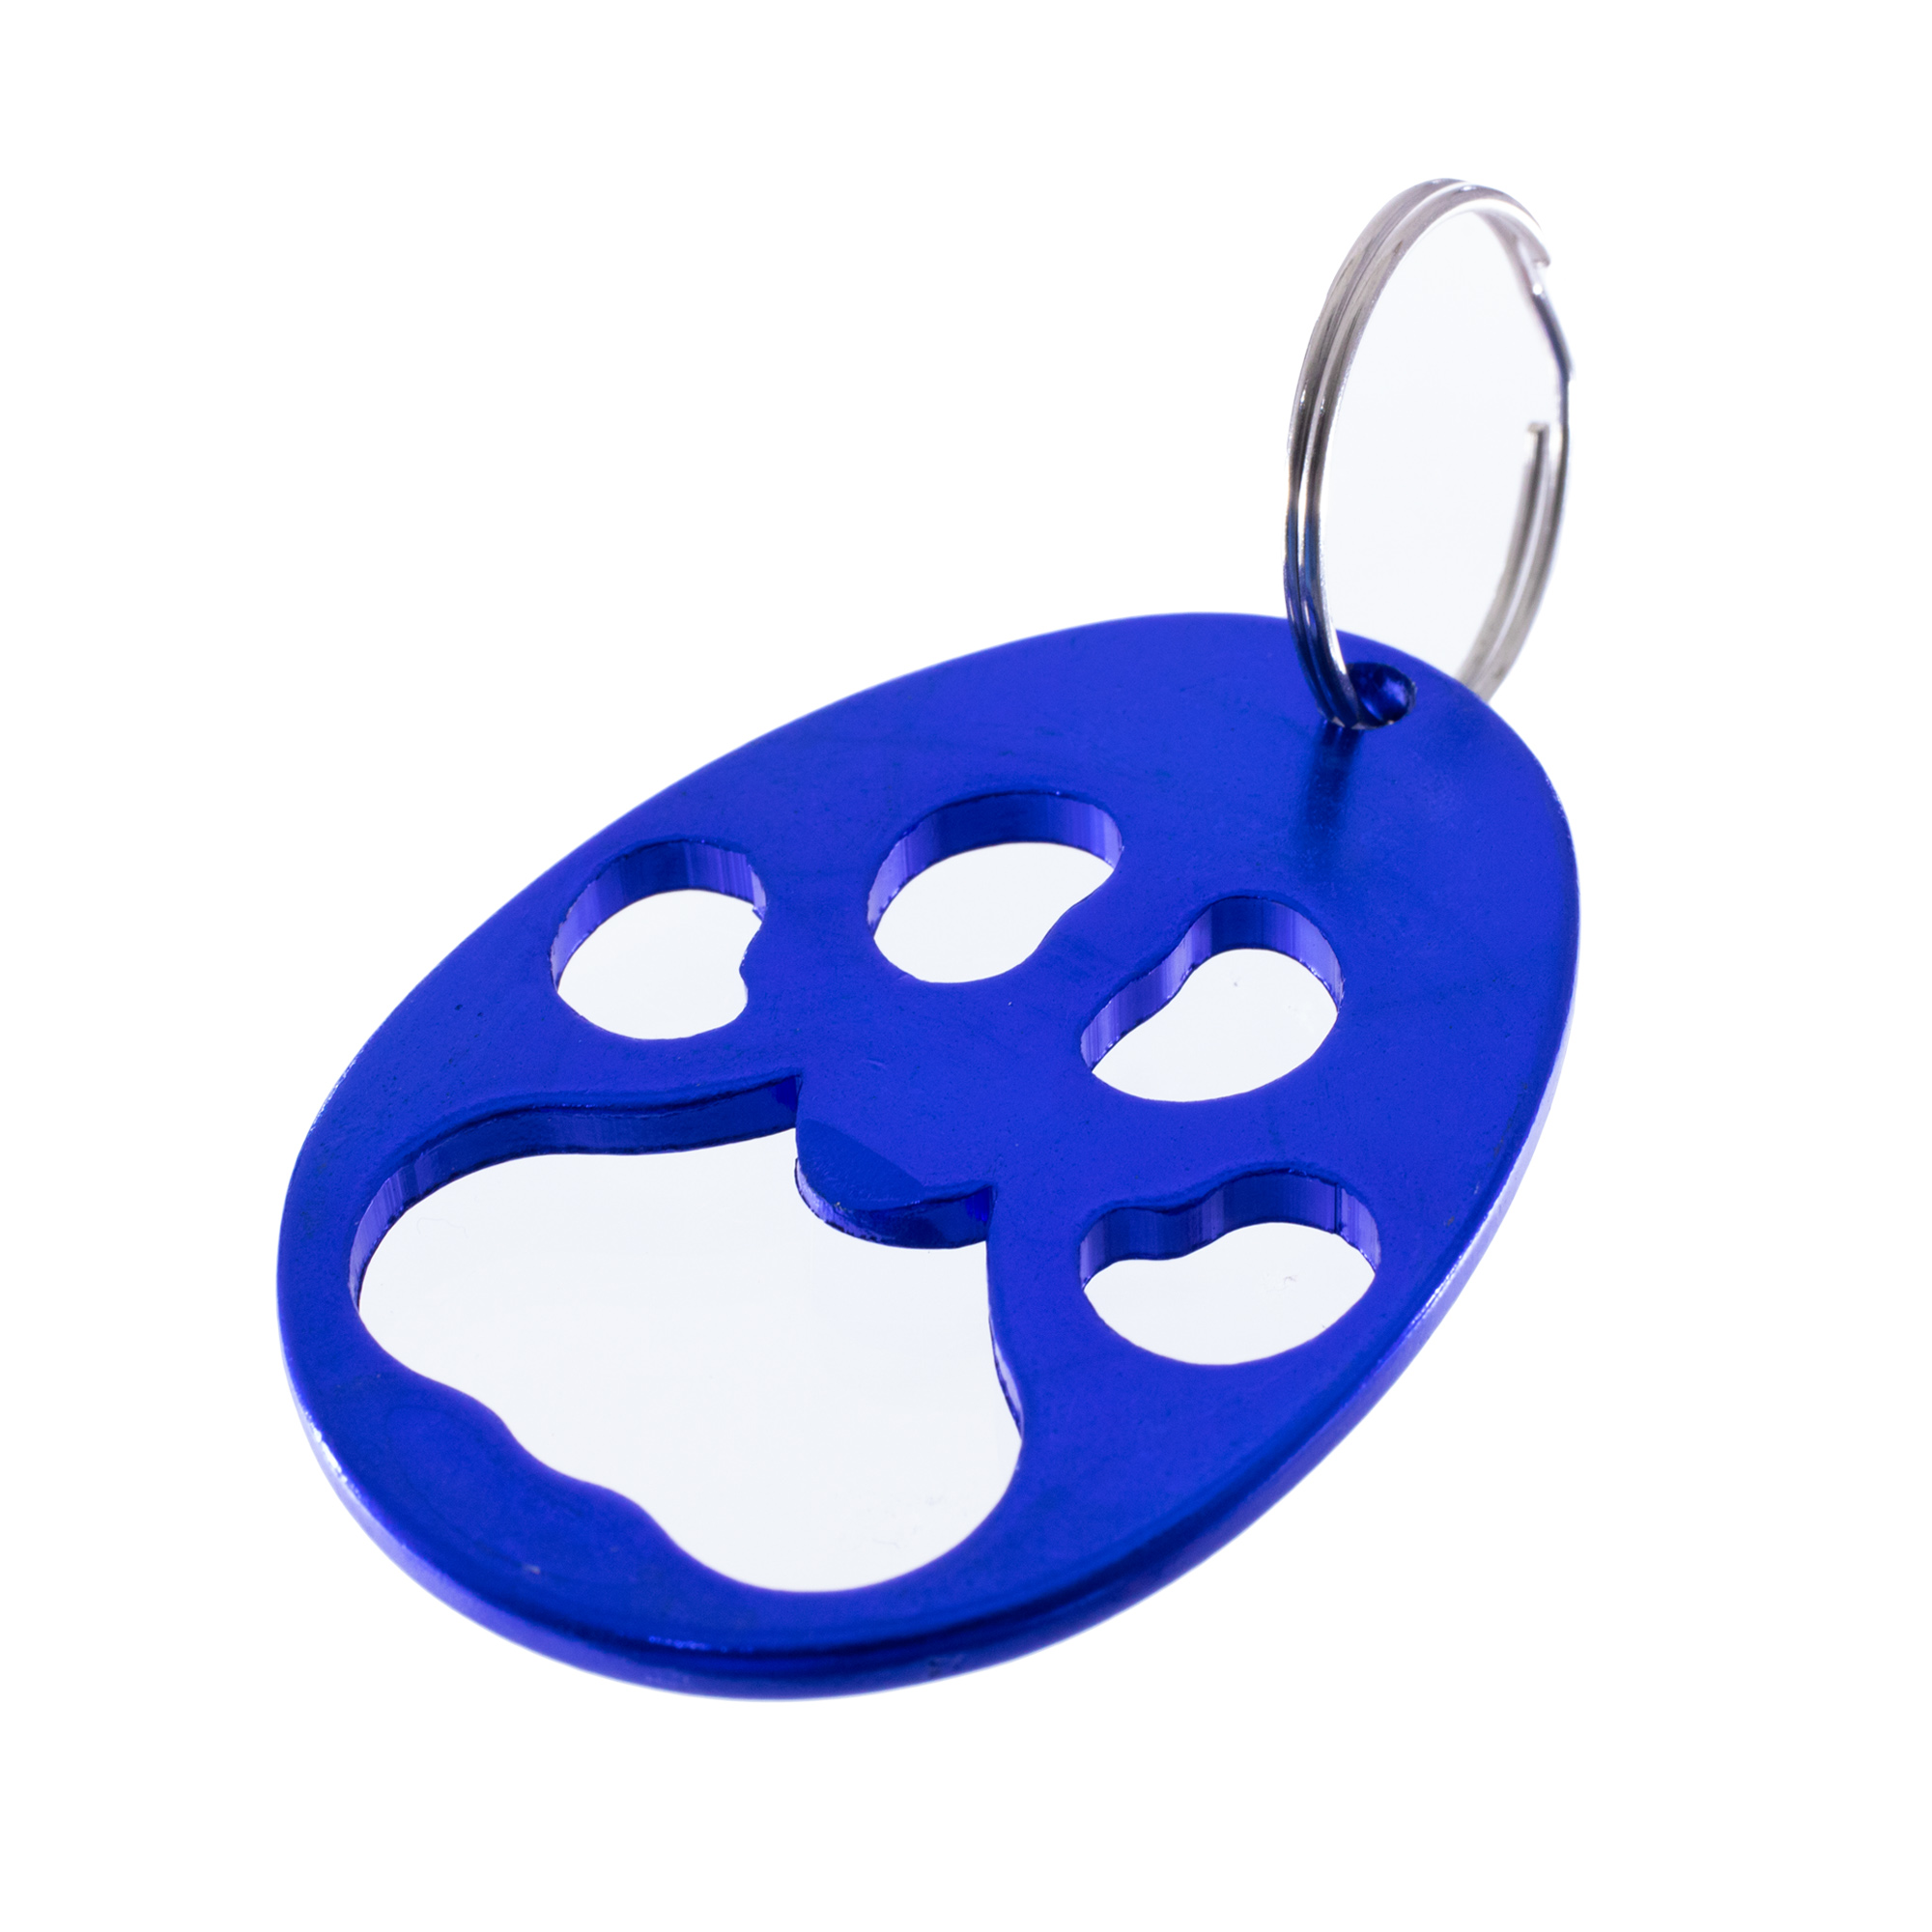 and 10 Red Blue Purple West Coast Paracord Paw Print Metal Keychain and Bottle Opener with Split Ring Gold and Silver Green Colors Include Black Packs of 1 2 5